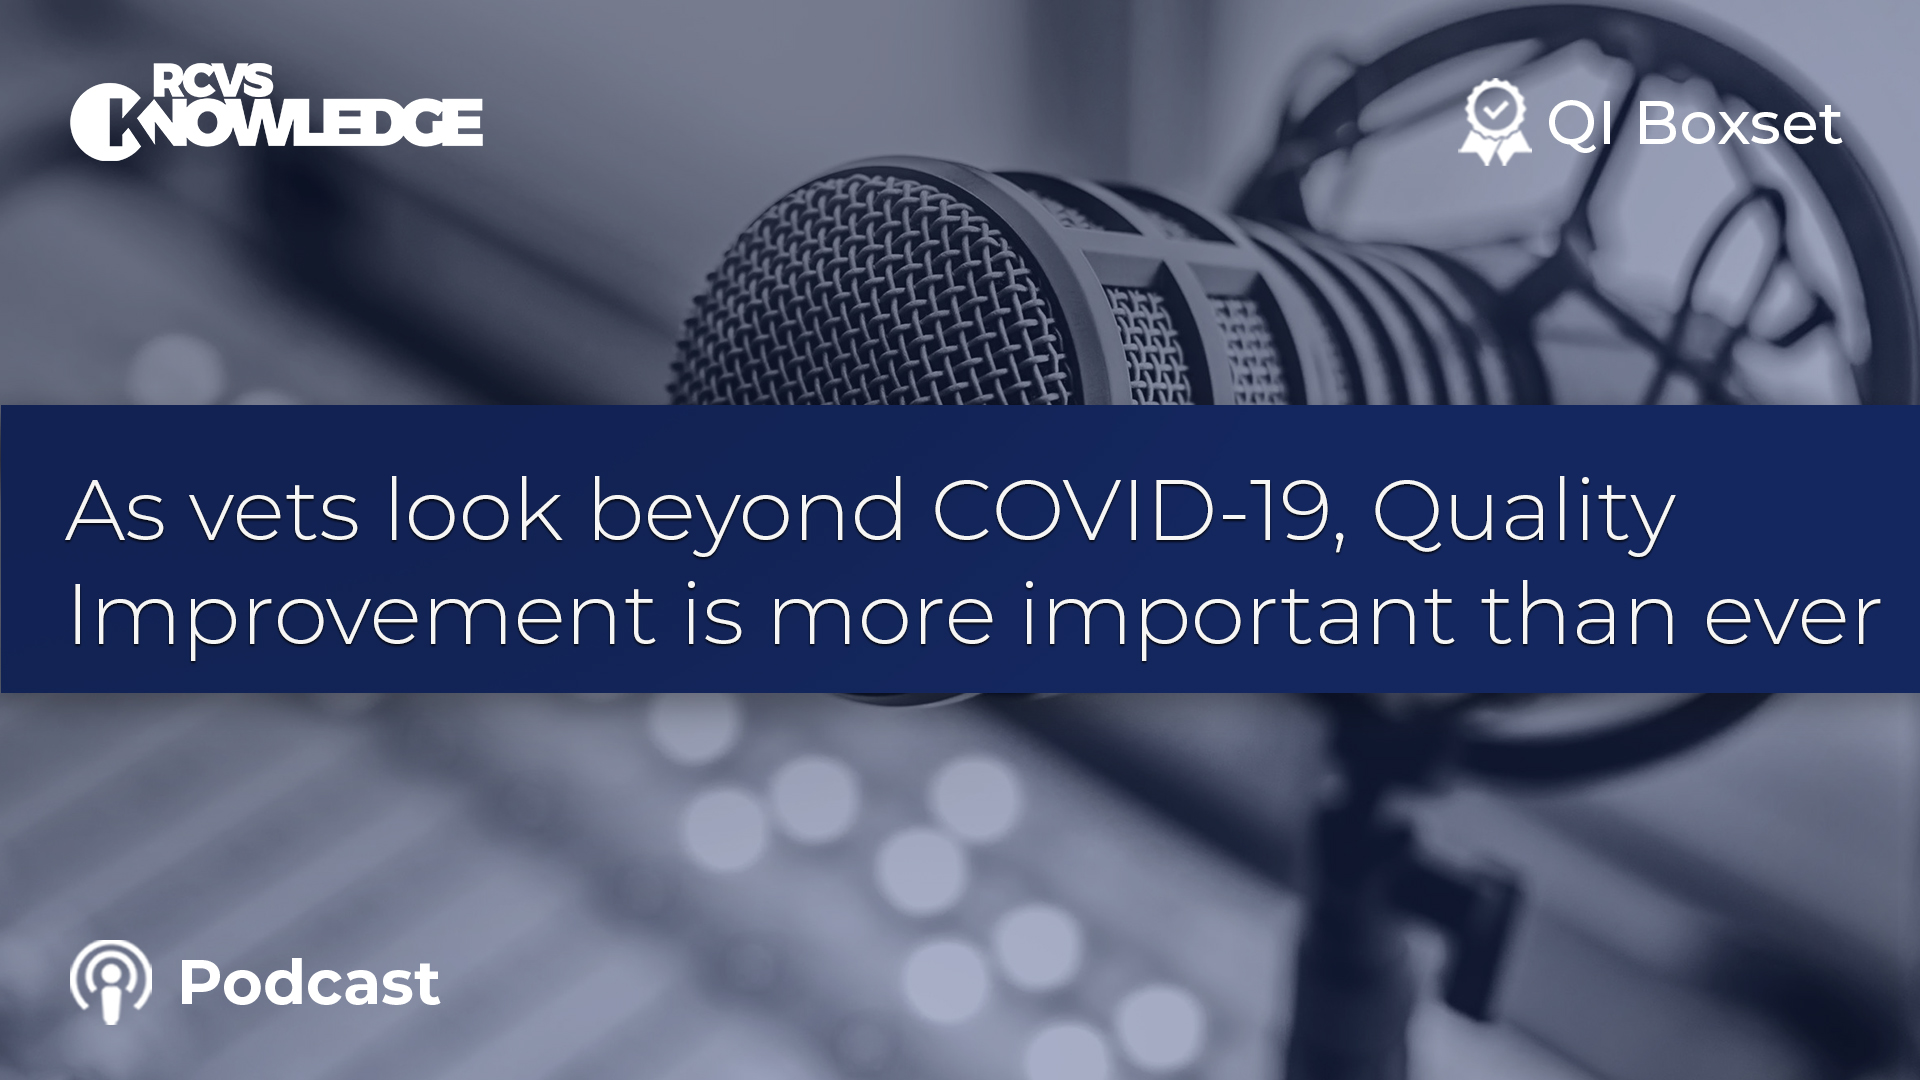 As vets look beyond COVID-19, QI is more important than ever